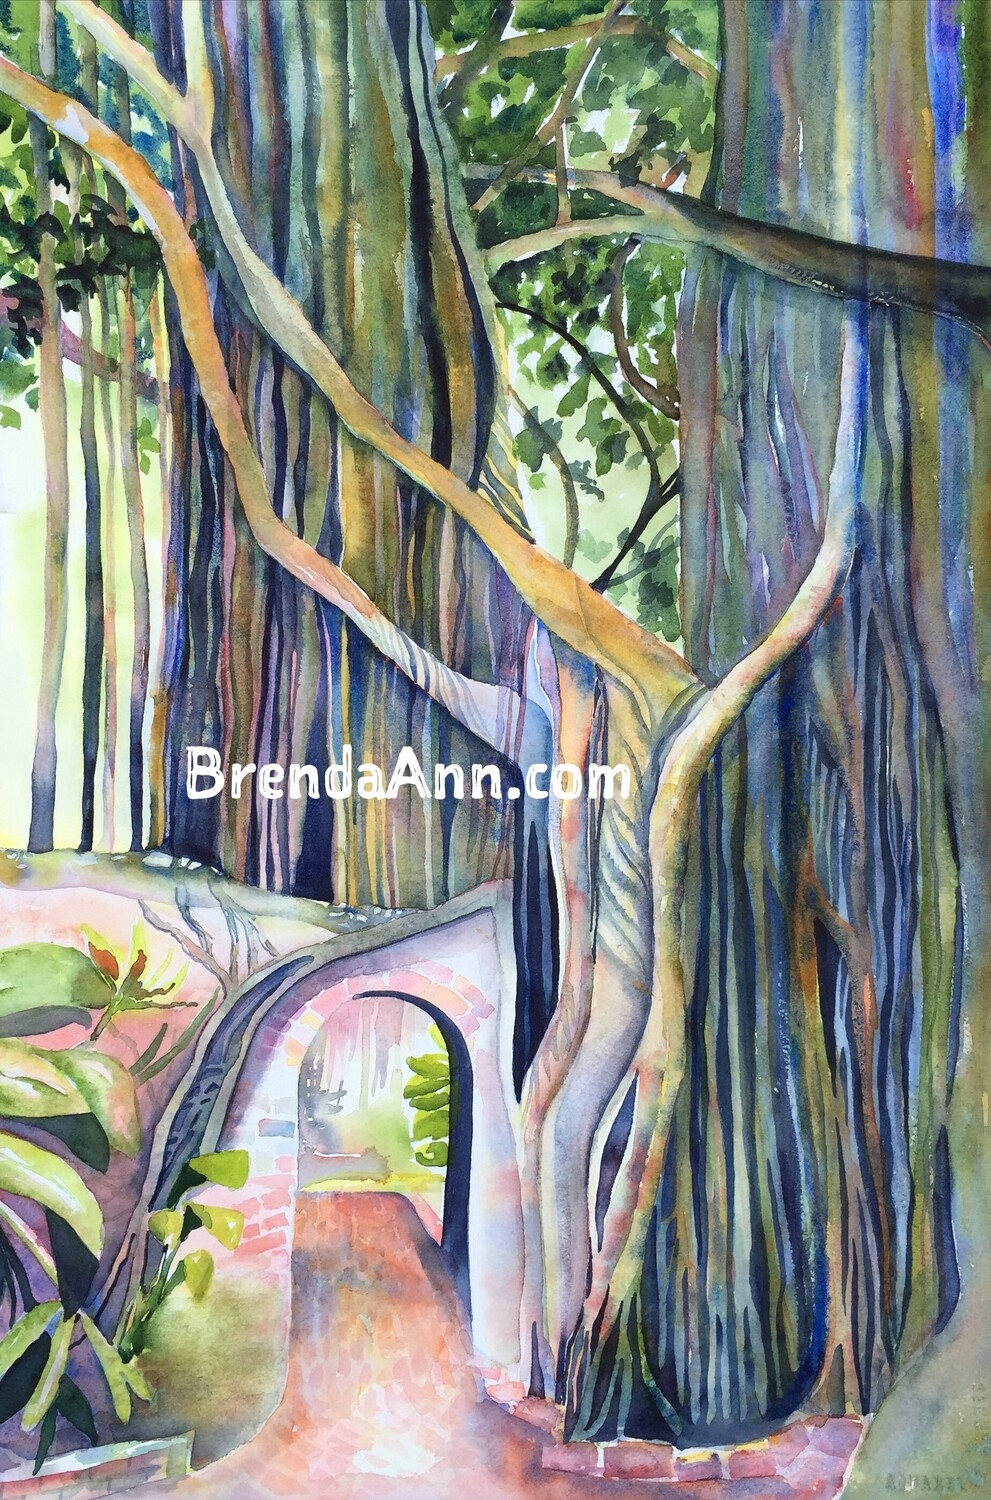 Key West Garden Club West Martello (Second Version) in Key West, FL - Hand Signed Archival Watercolor Print